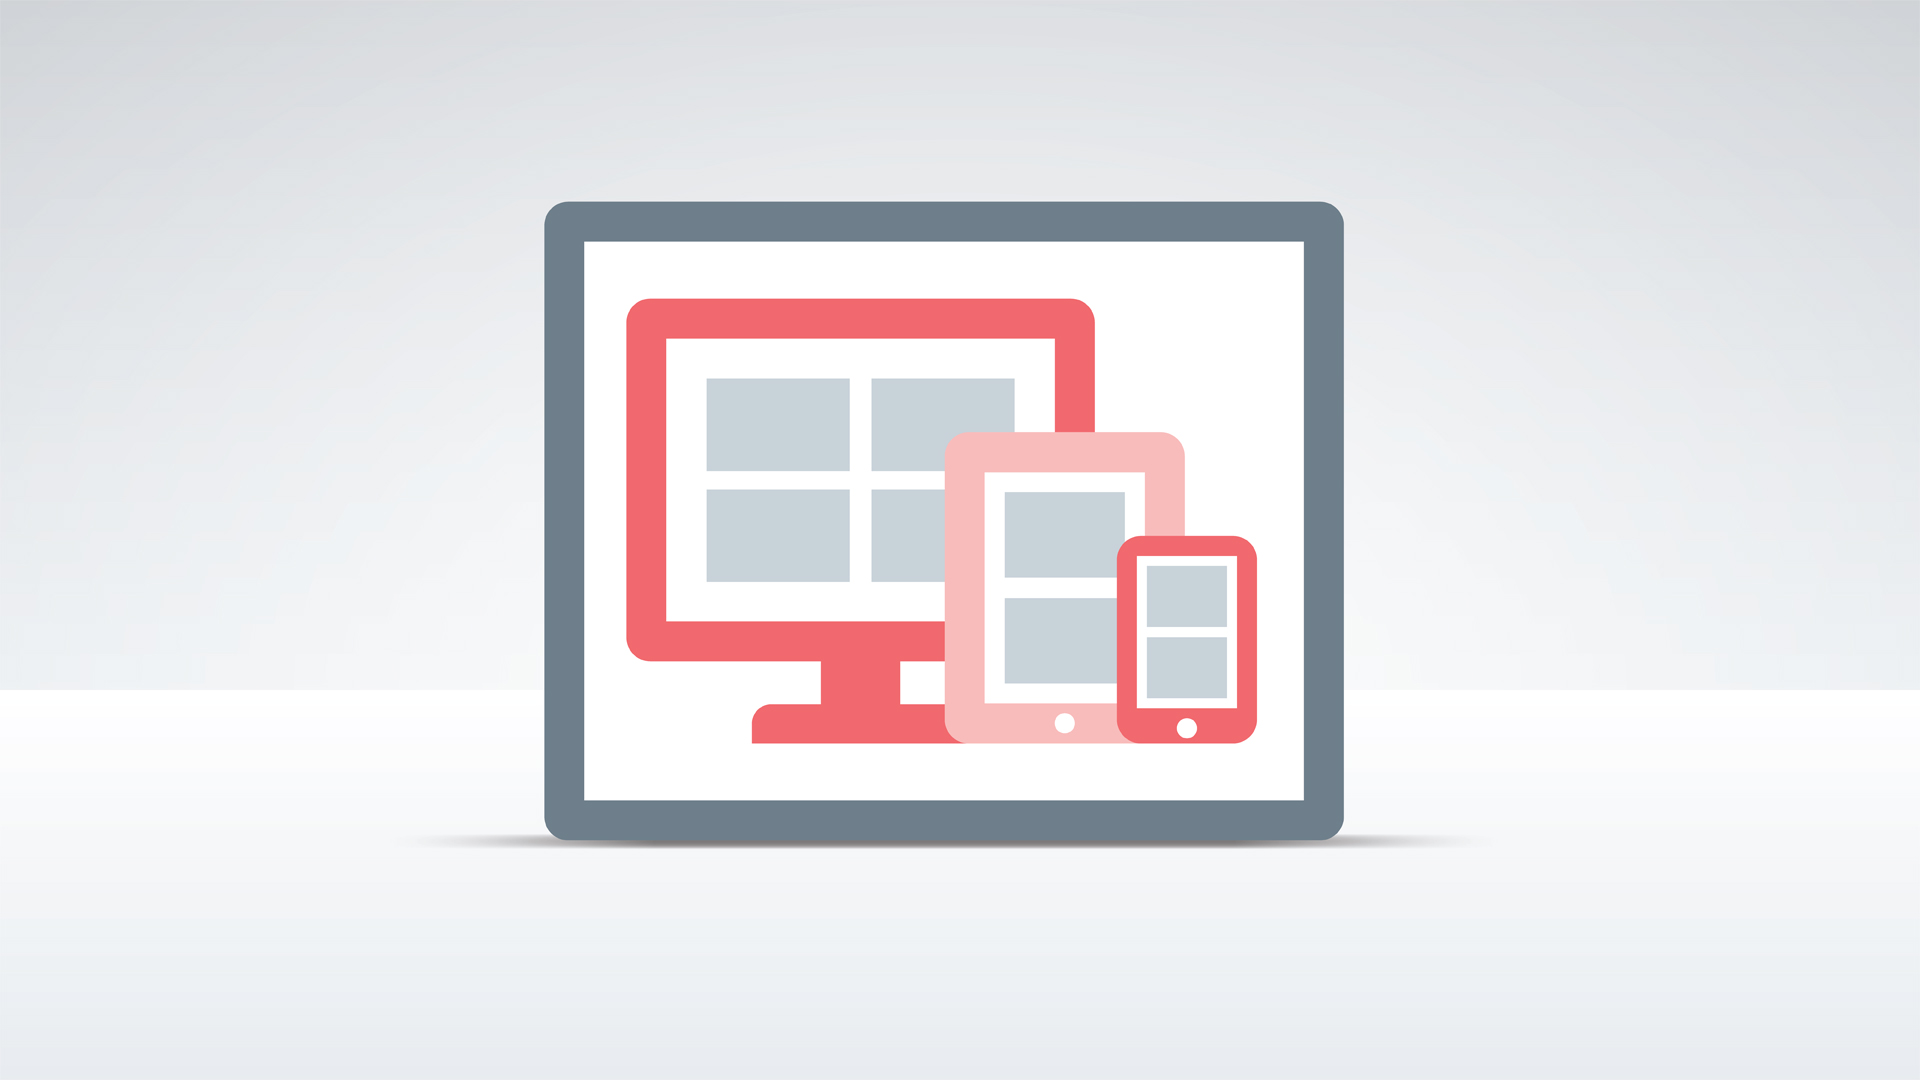 Displaying URLS when printing: Creating a Responsive Web Design